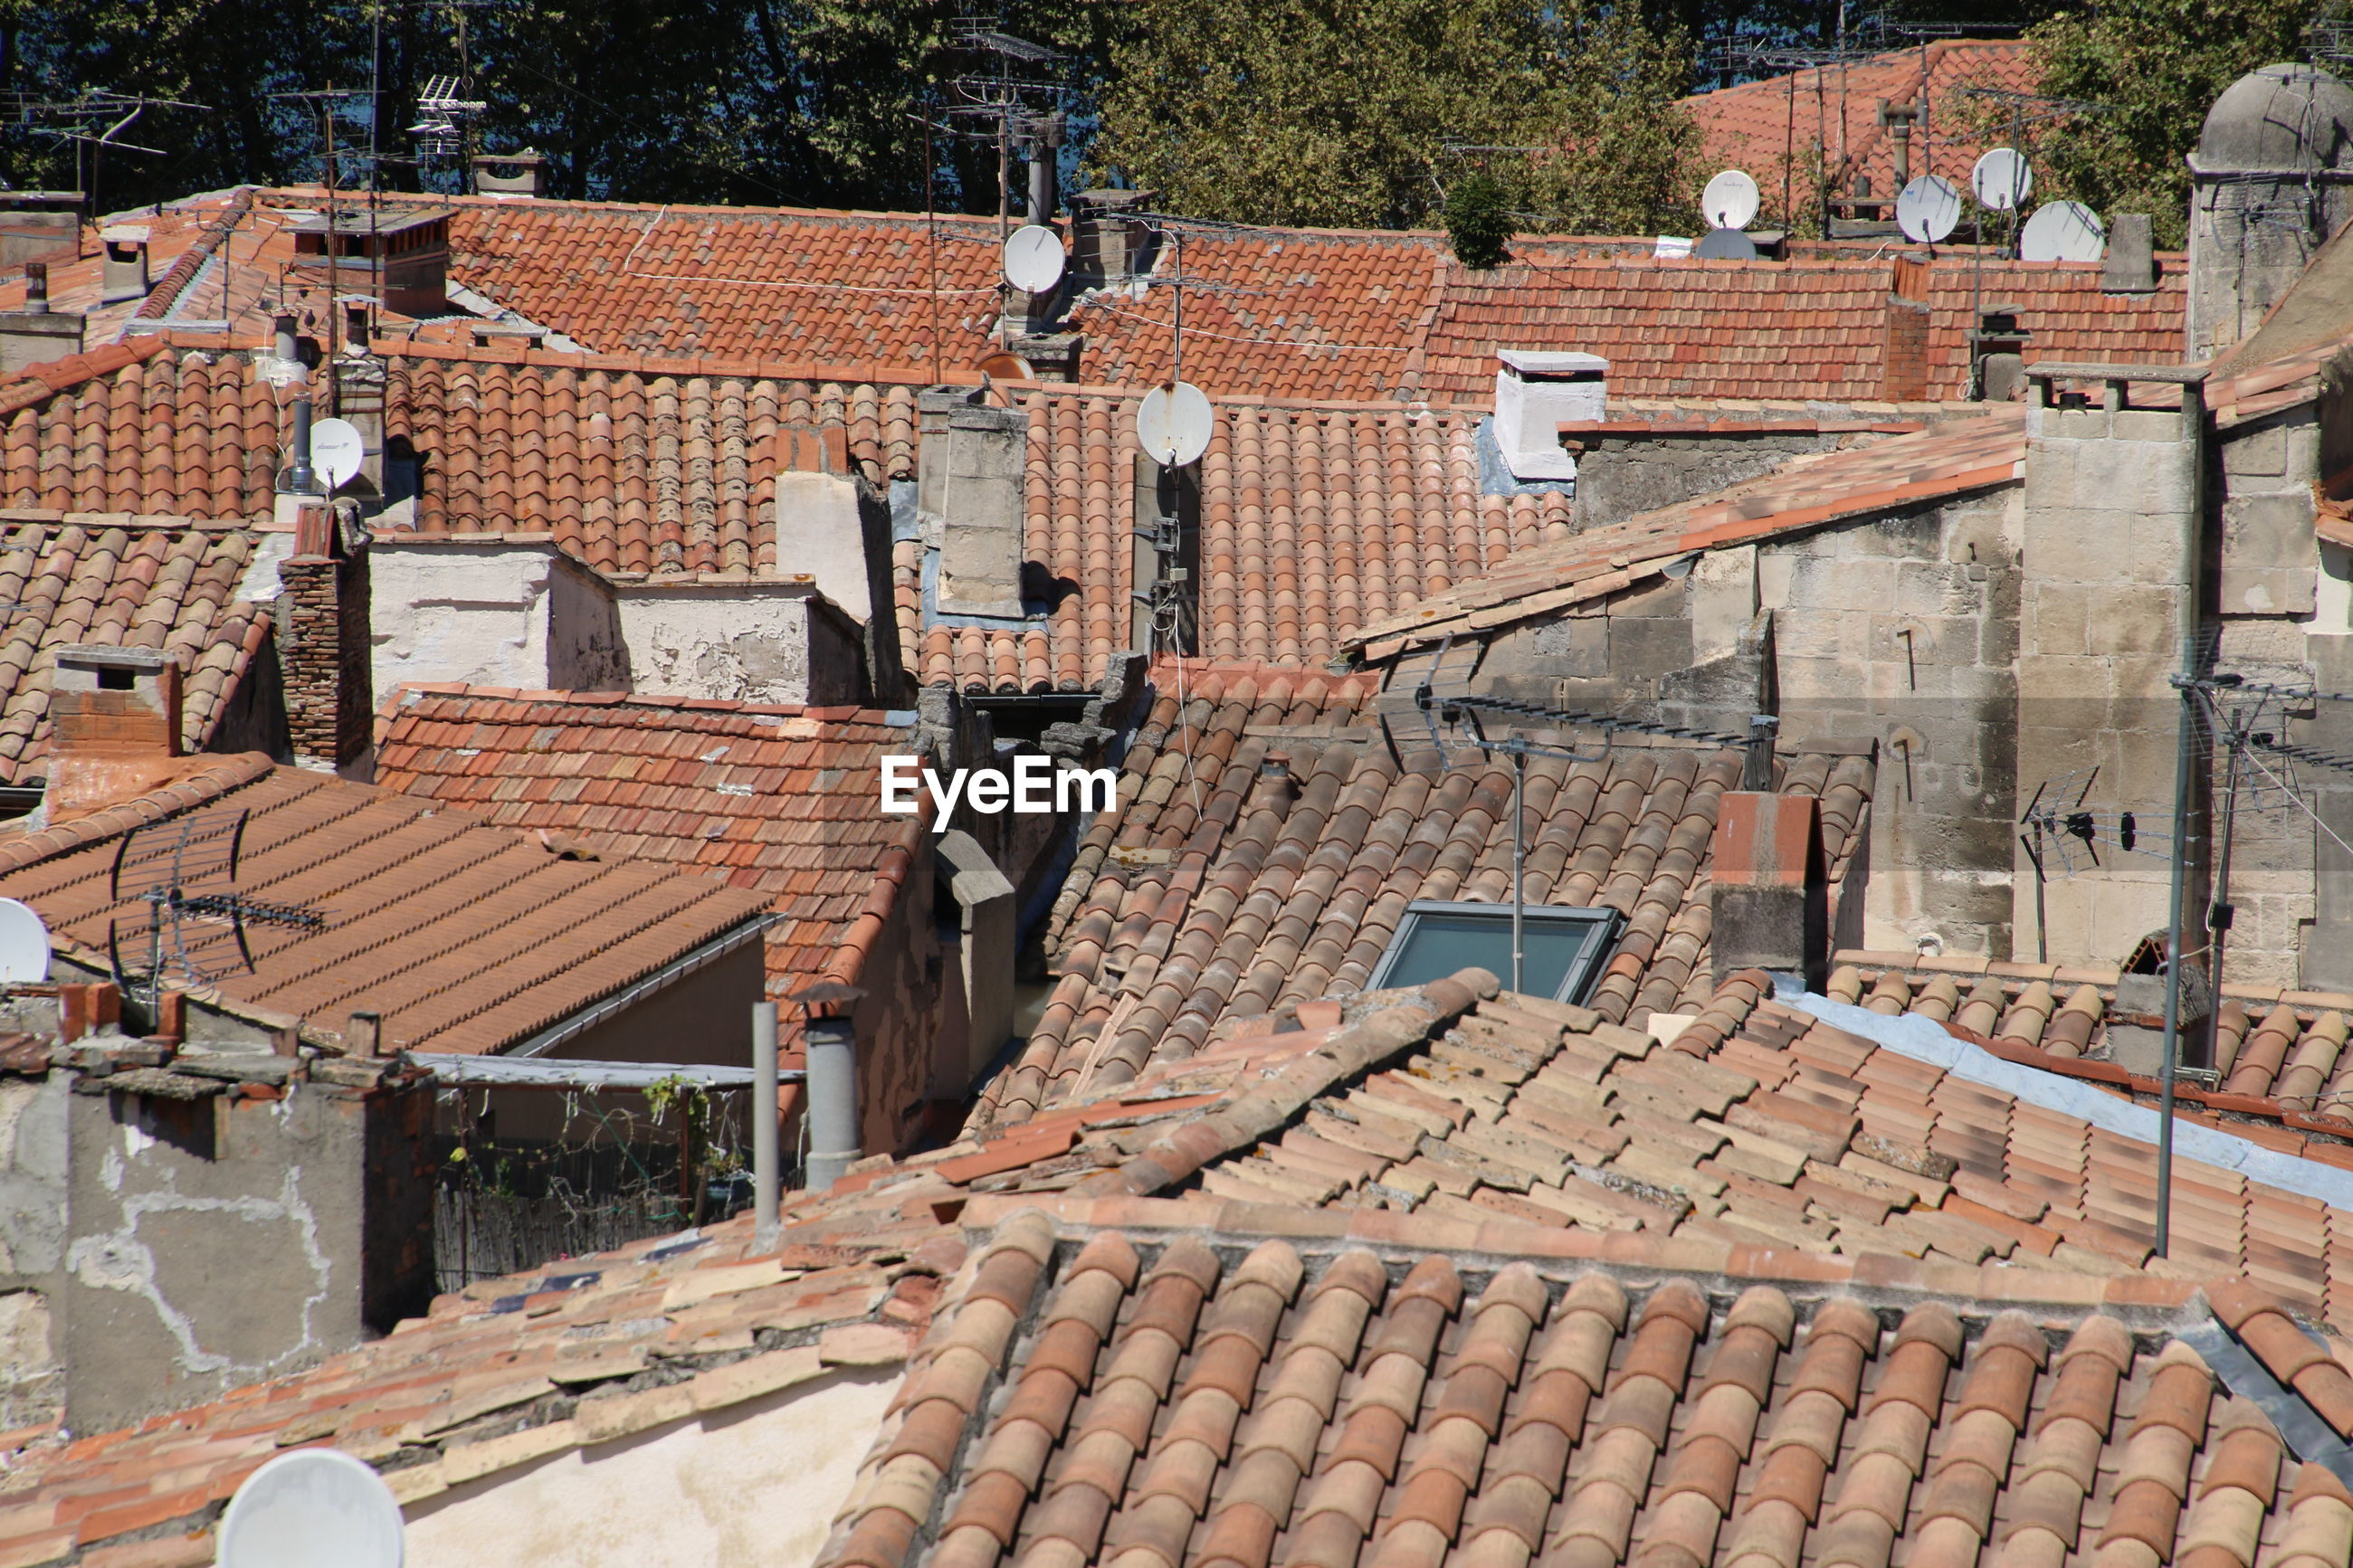 HIGH ANGLE VIEW OF COBBLESTONE STREET AMIDST BUILDINGS